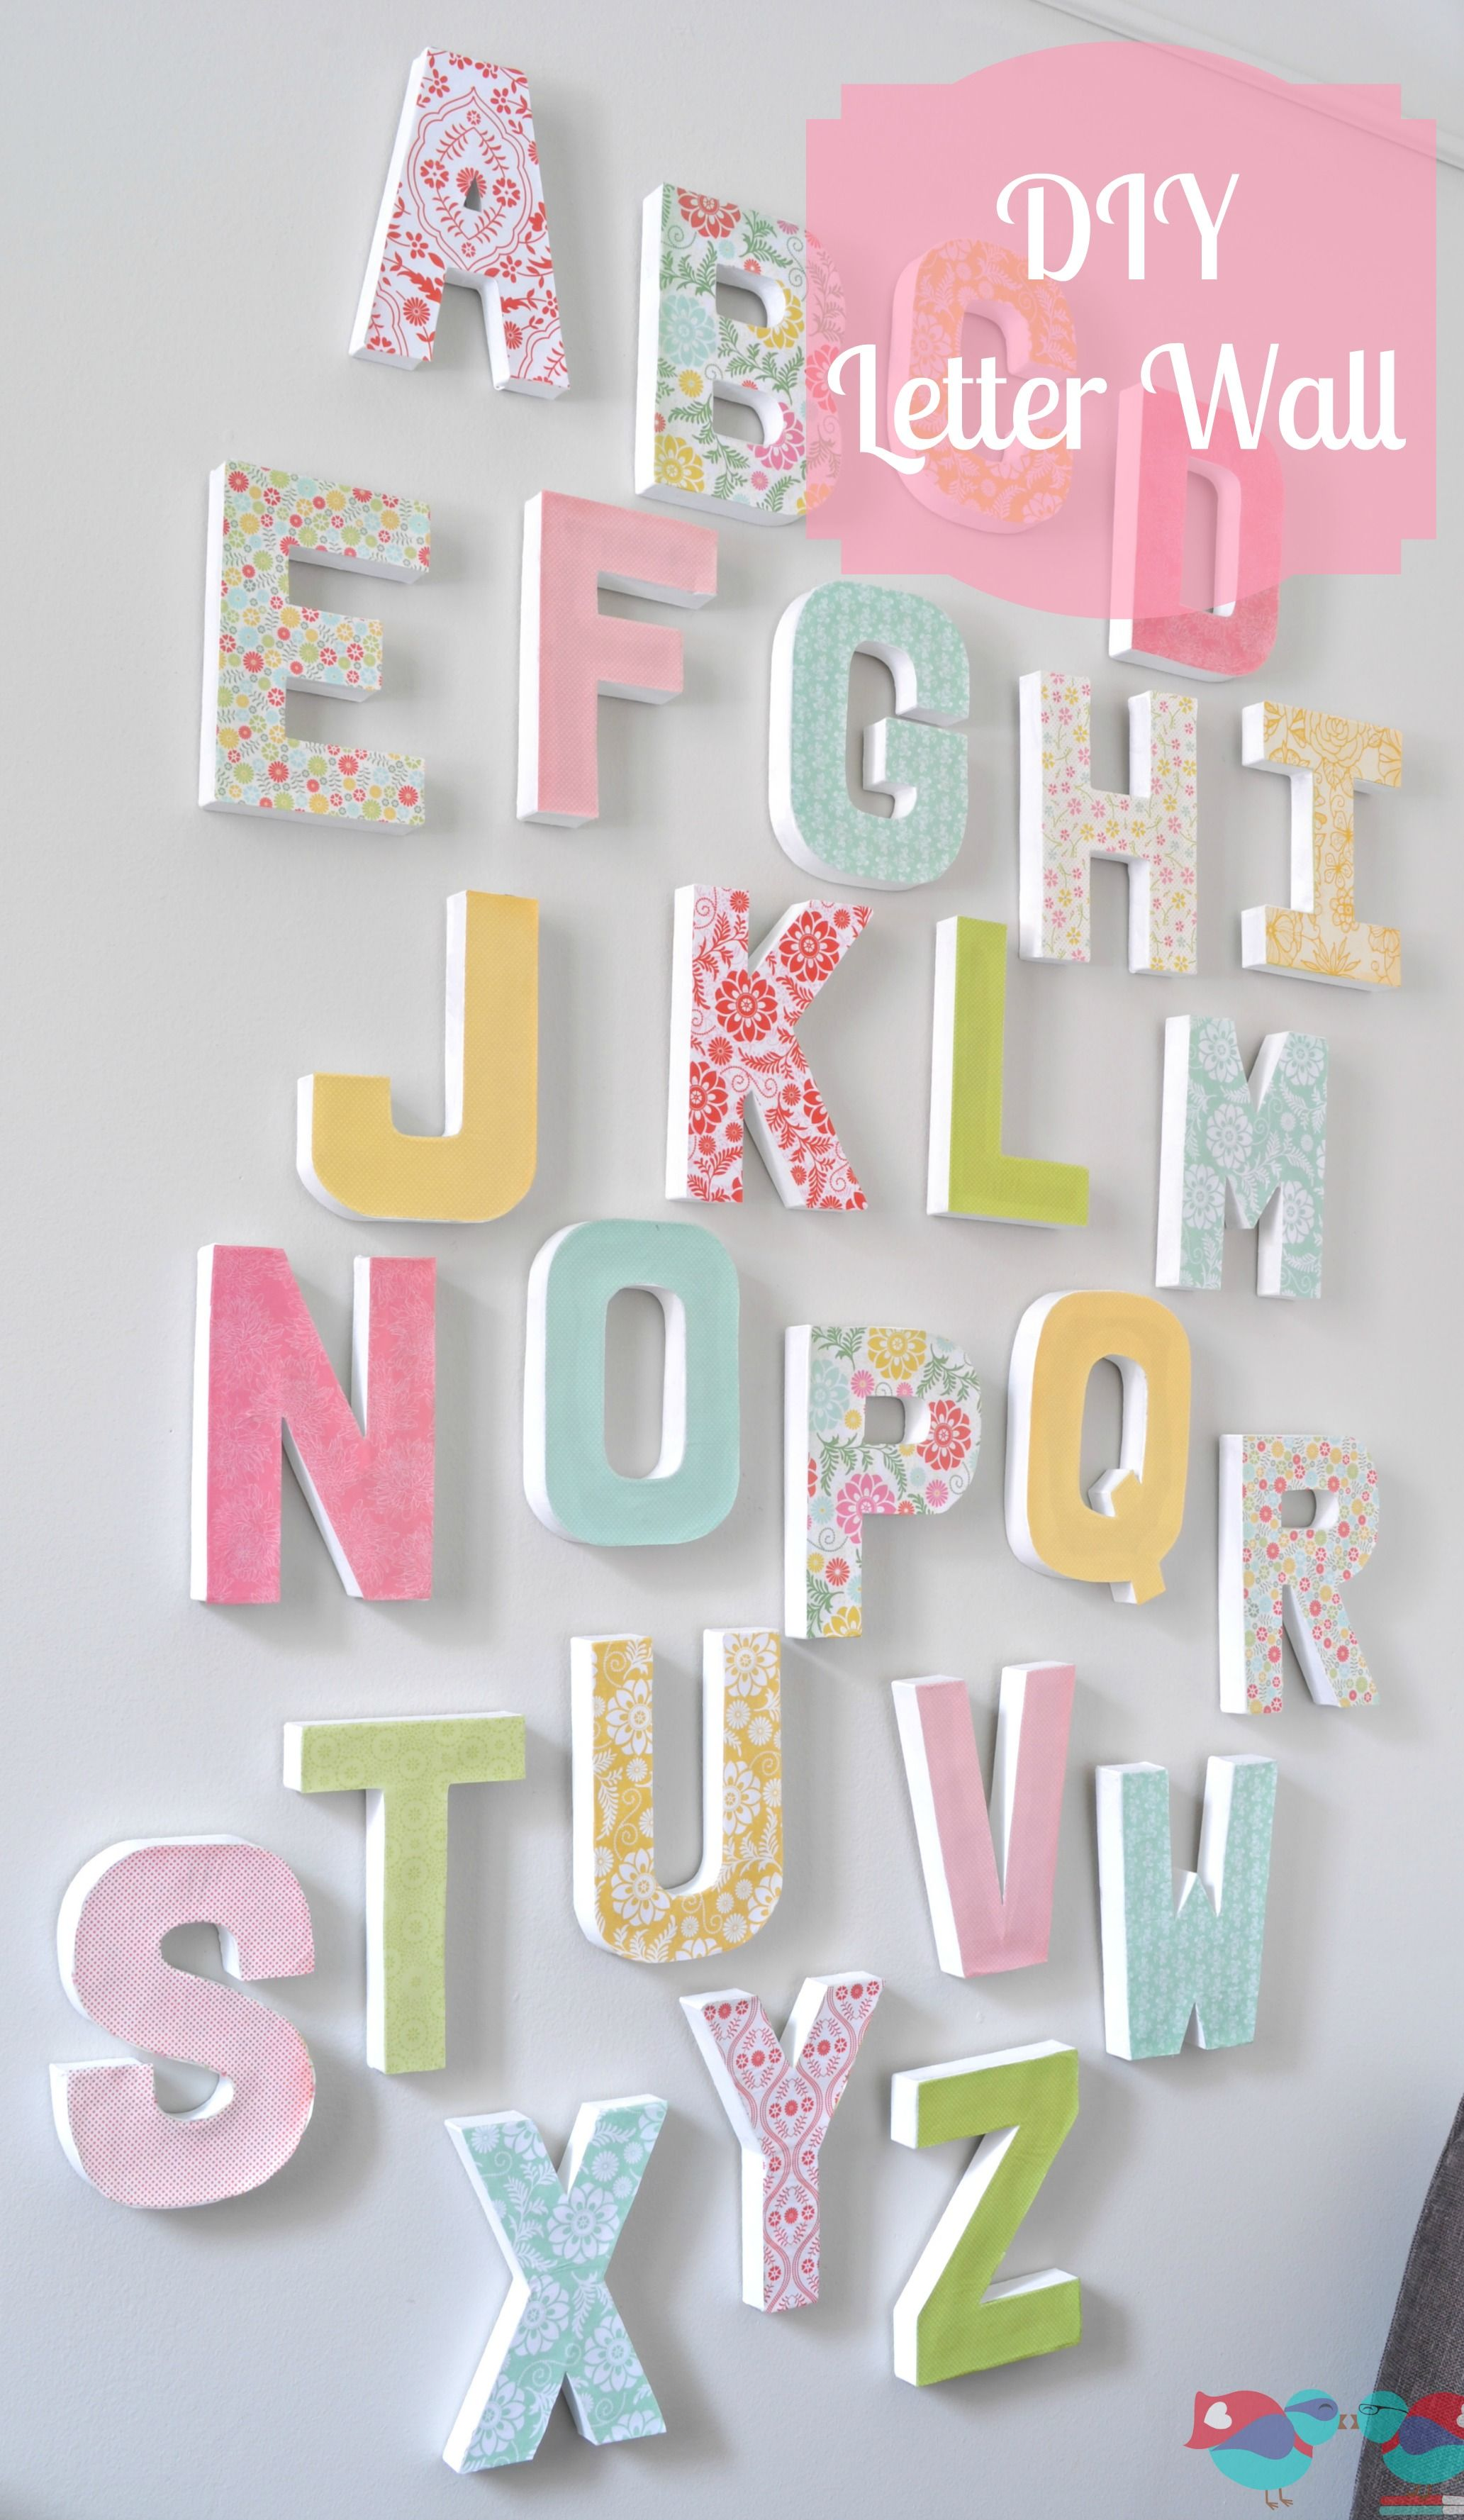 #DIY Letter Wall @LoveNerdMaggie   Colorful Wall Decor #modpodge